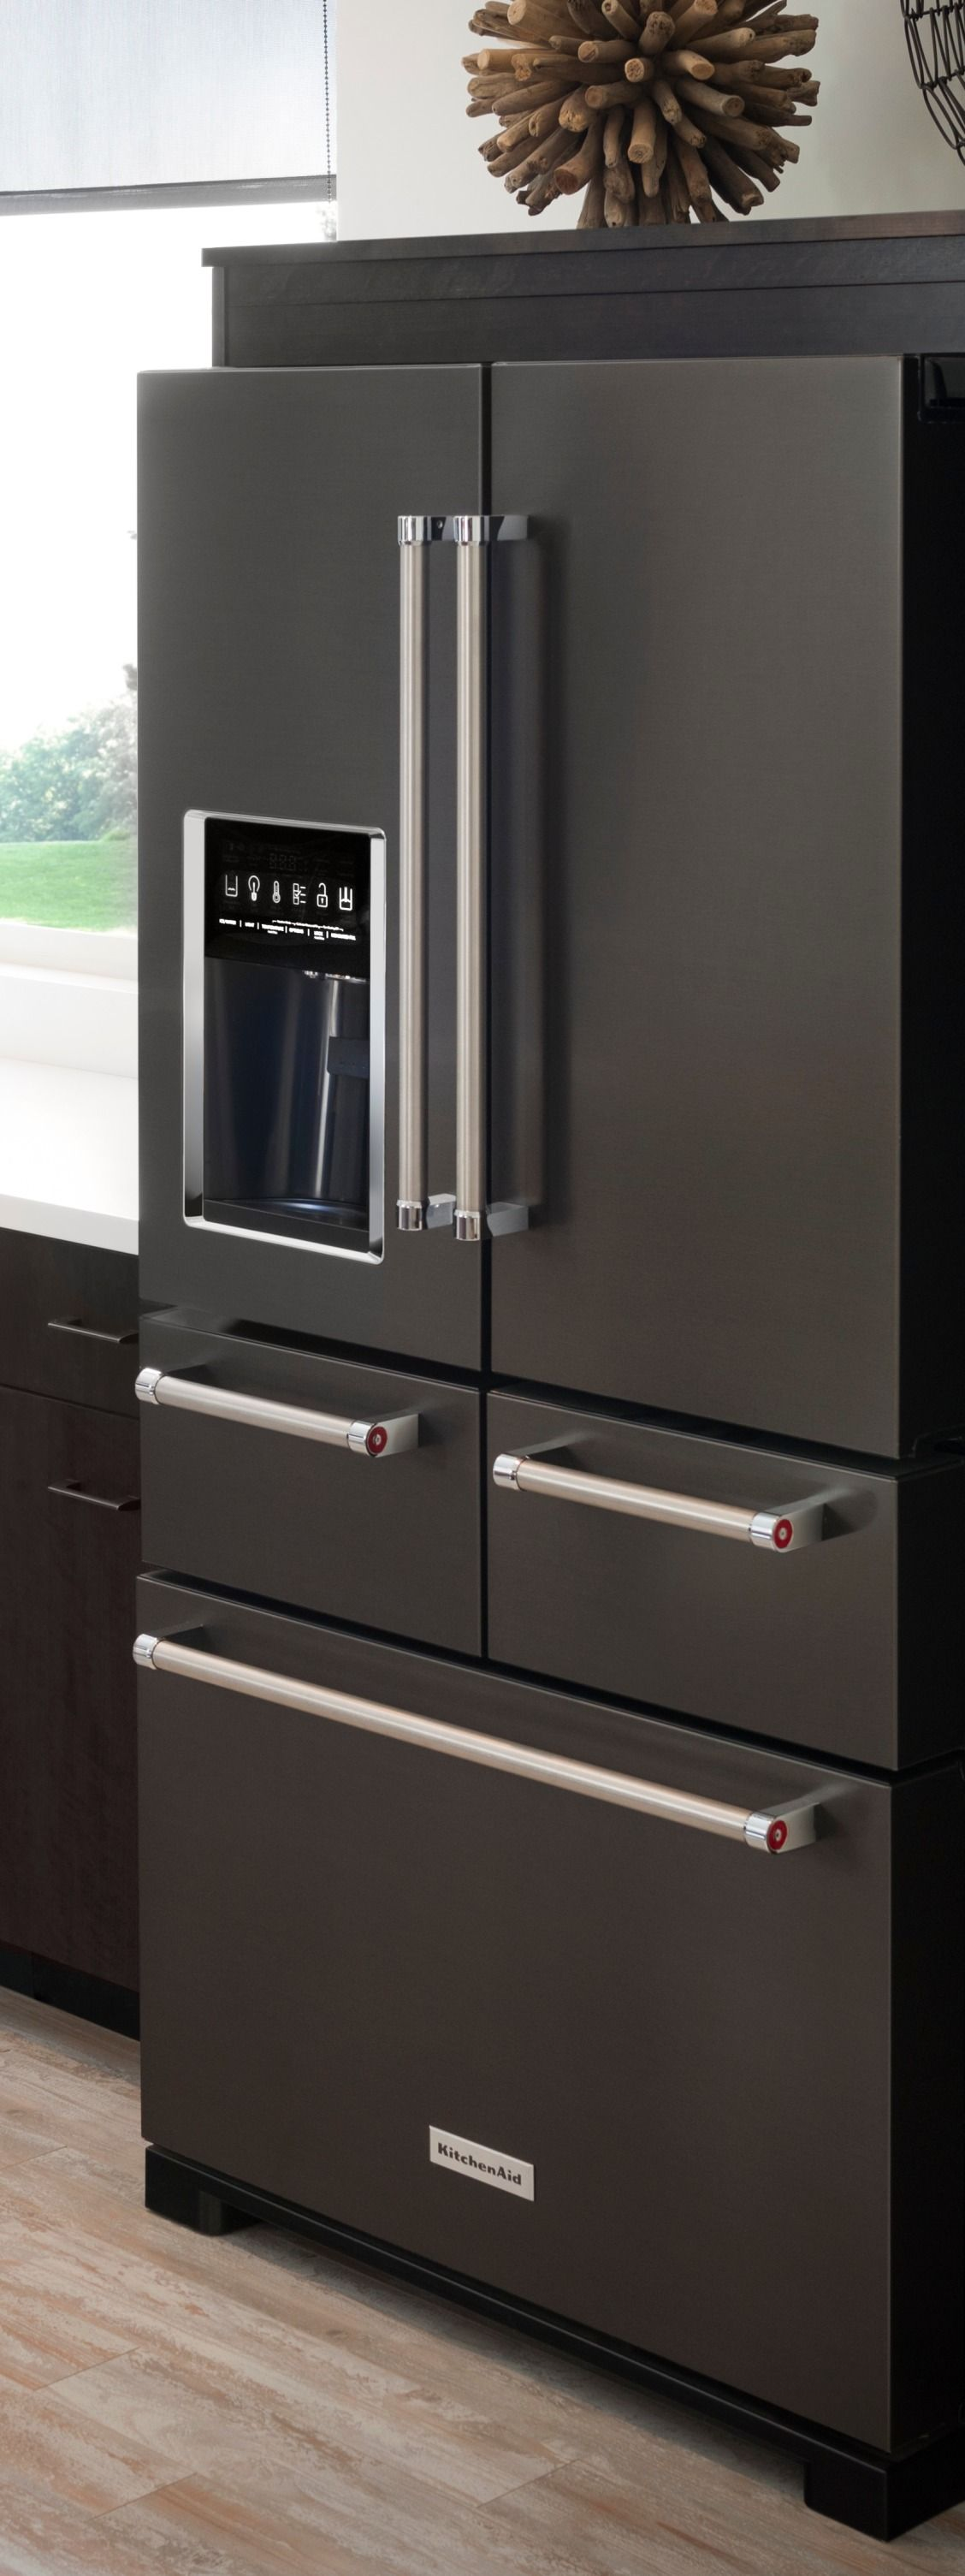 Black Stainless Steel Appliances Give Your Kitchen A Bold Sleek